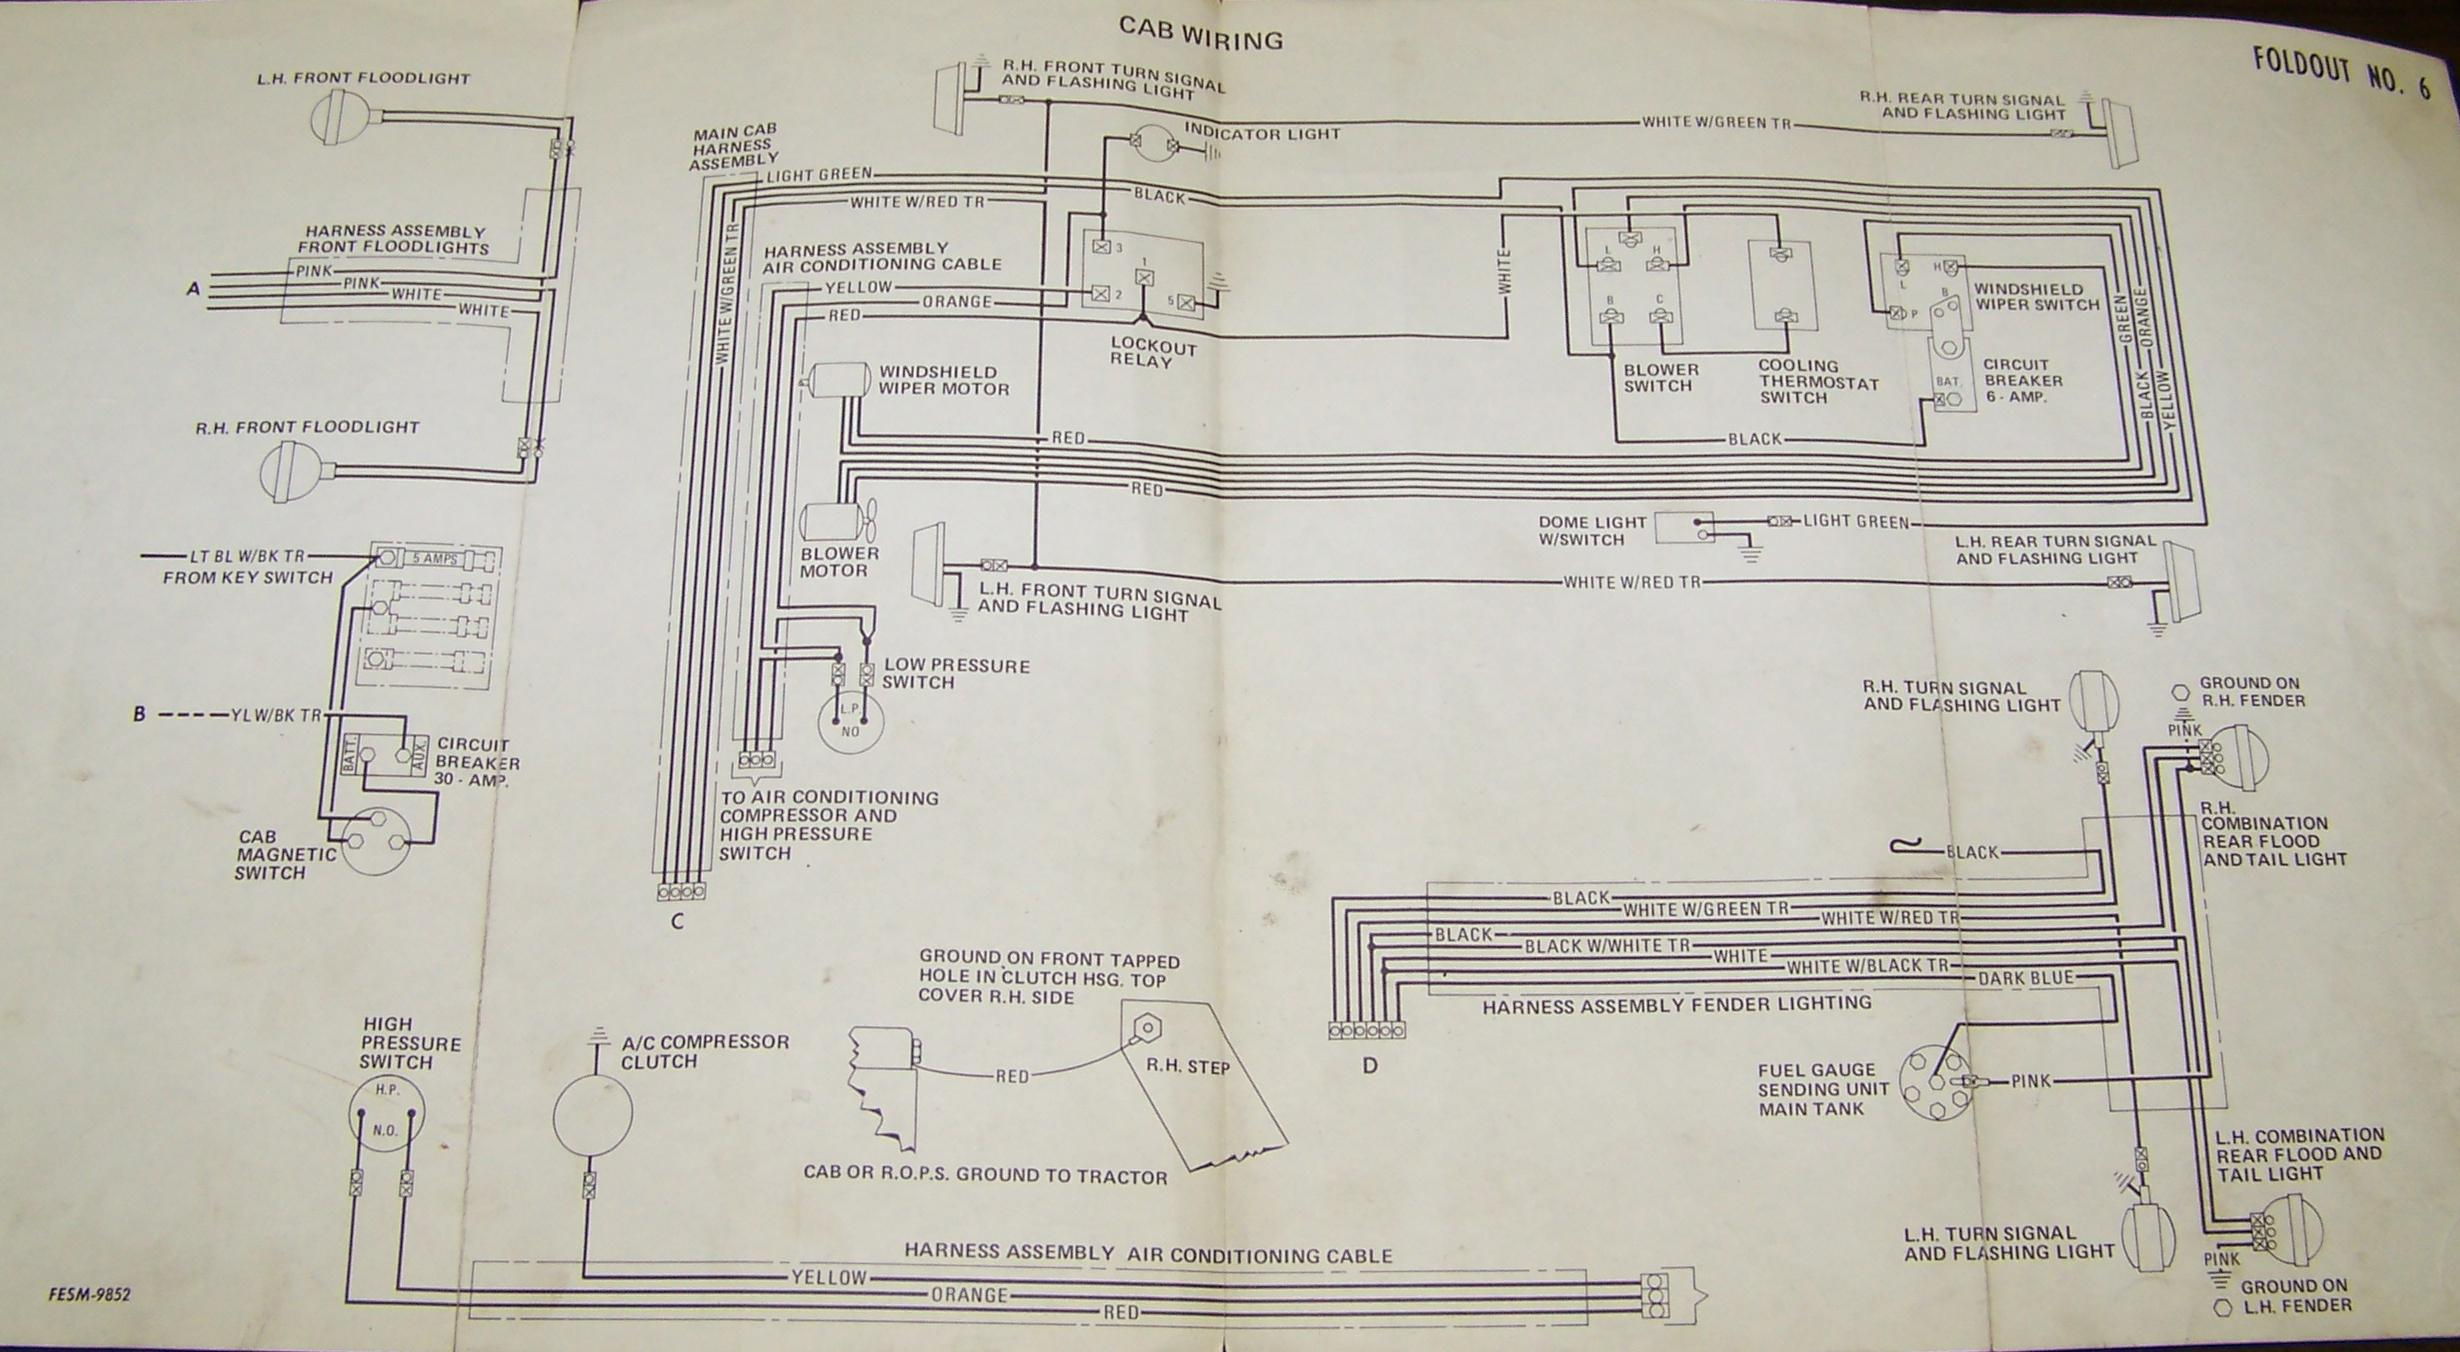 [DIAGRAM_38DE]  E8CF05 Farmall Cub Wiring Diagrams For 1957 | Wiring Resources | Cub Tractor Wiring Diagrams |  | Wiring Resources